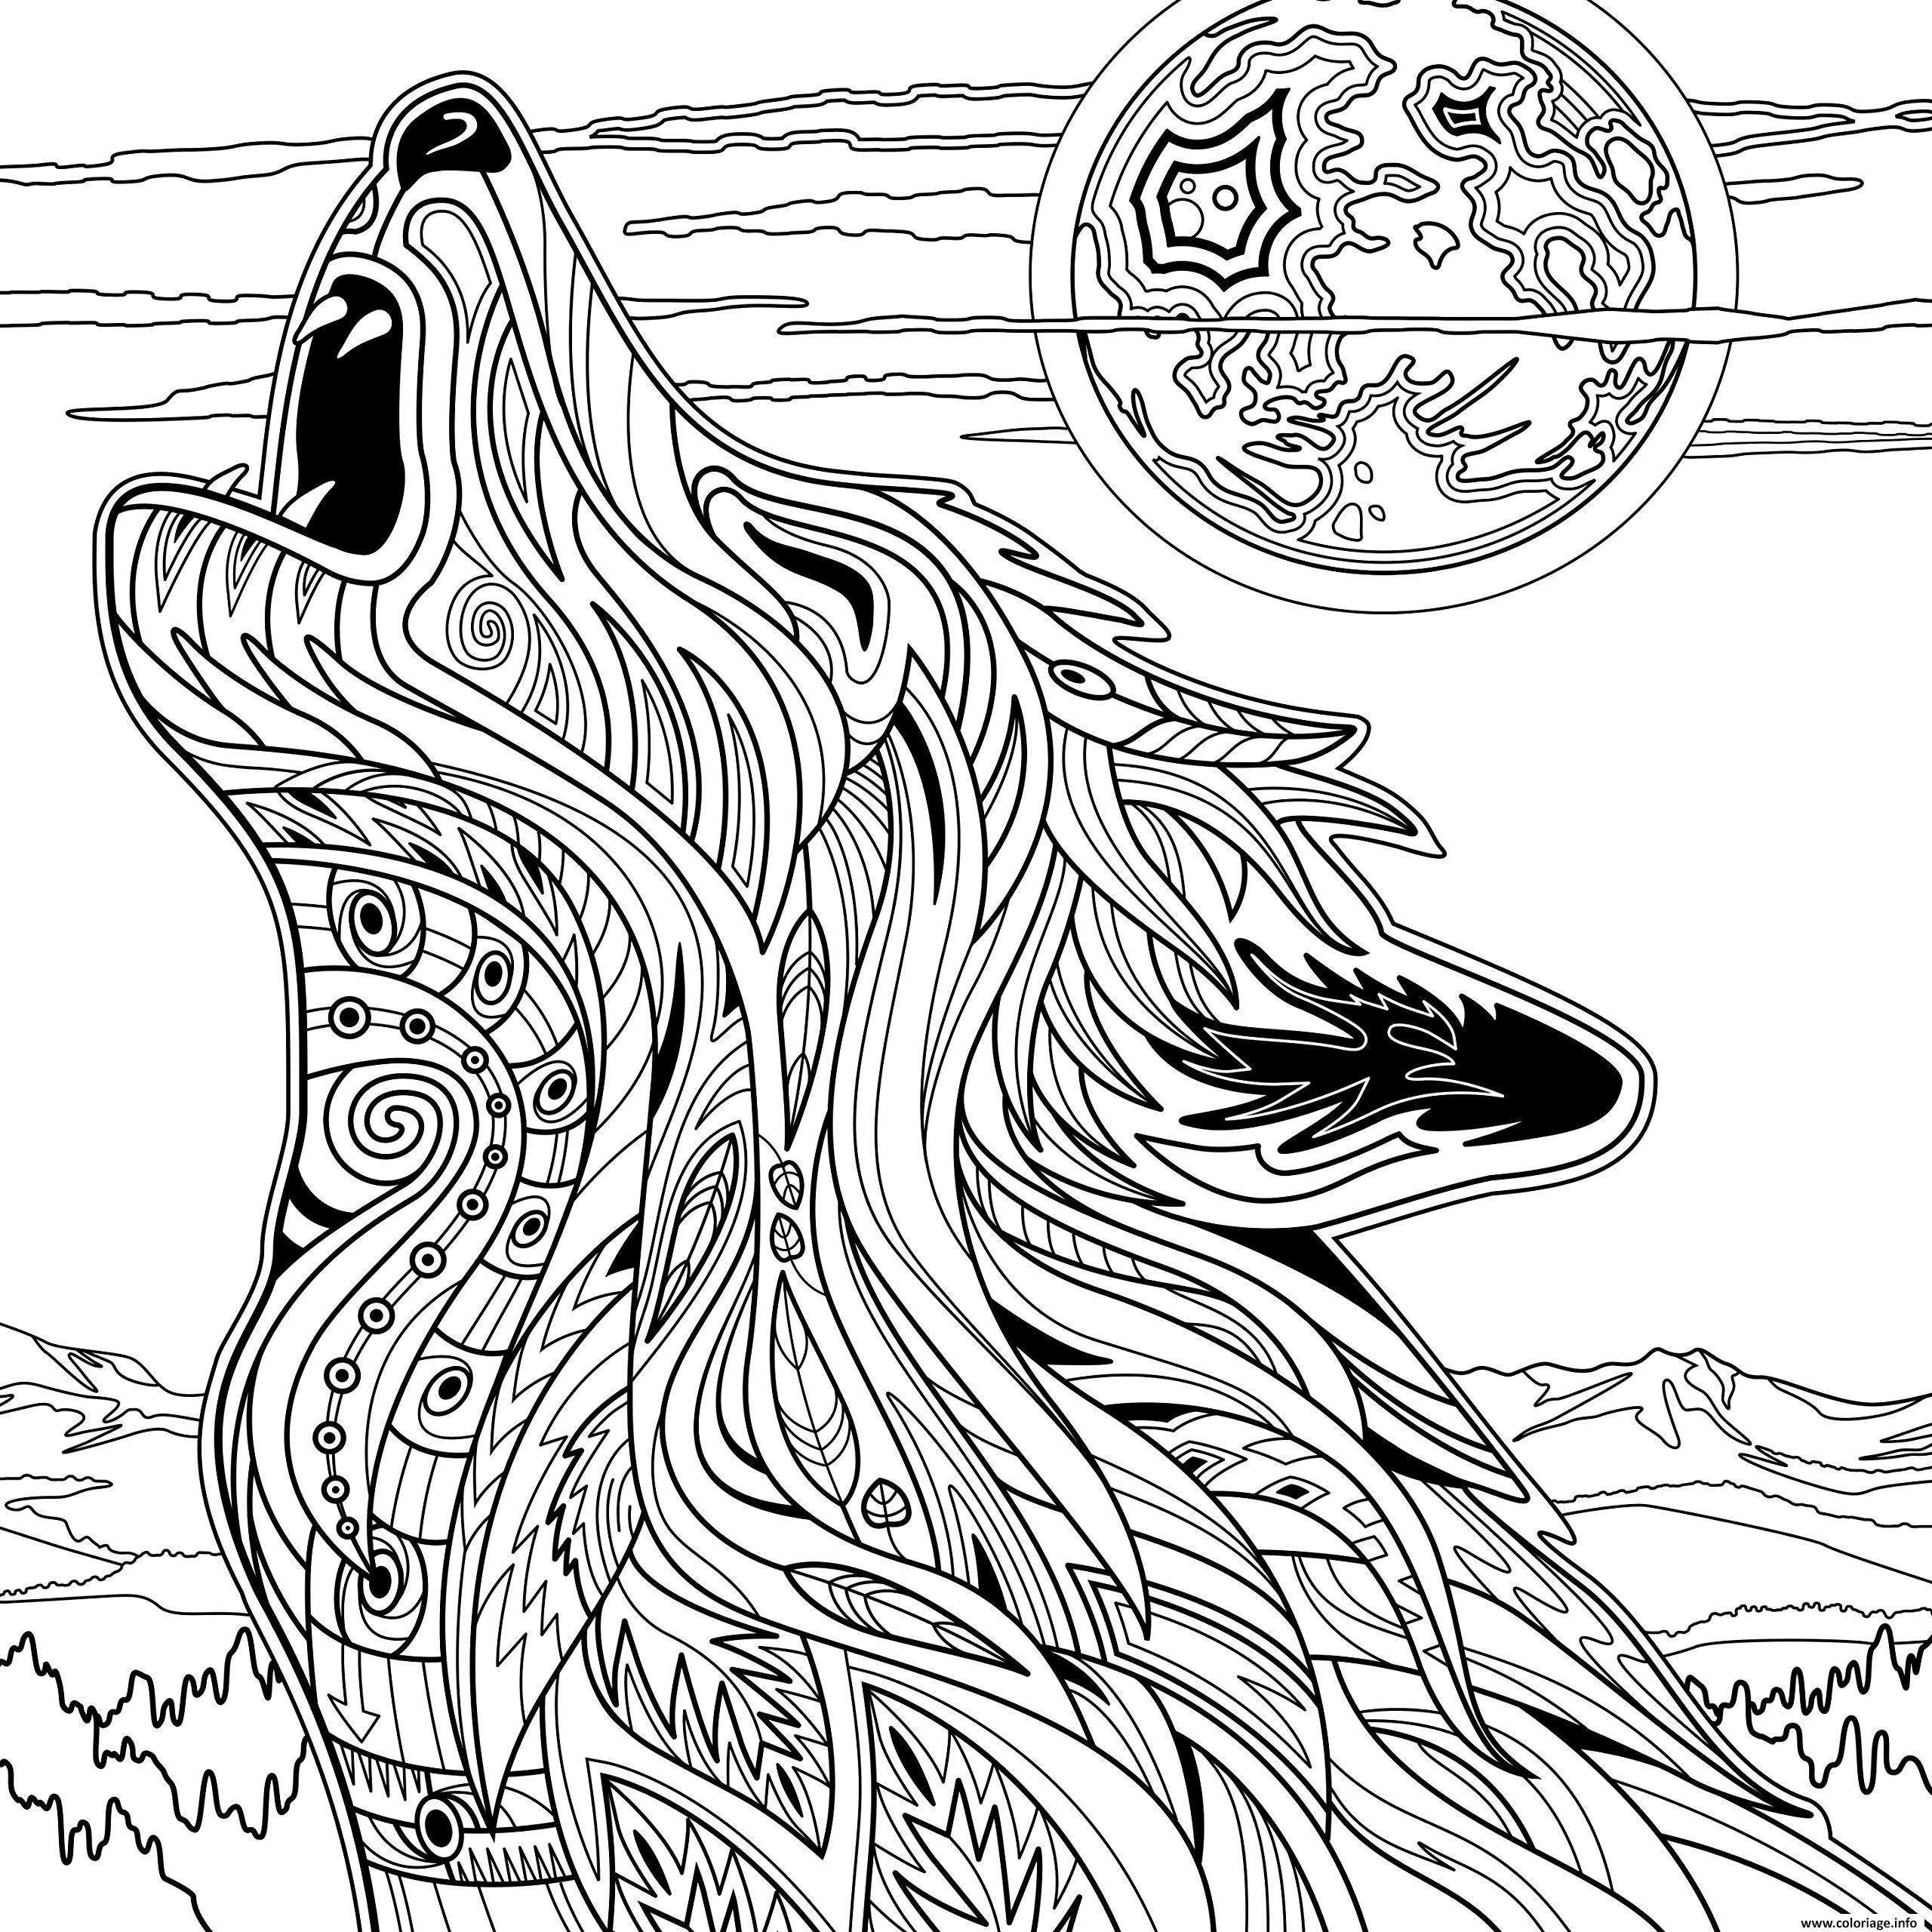 Coloriage adulte loup animaux yellowstone national park - Coloriage de loups ...